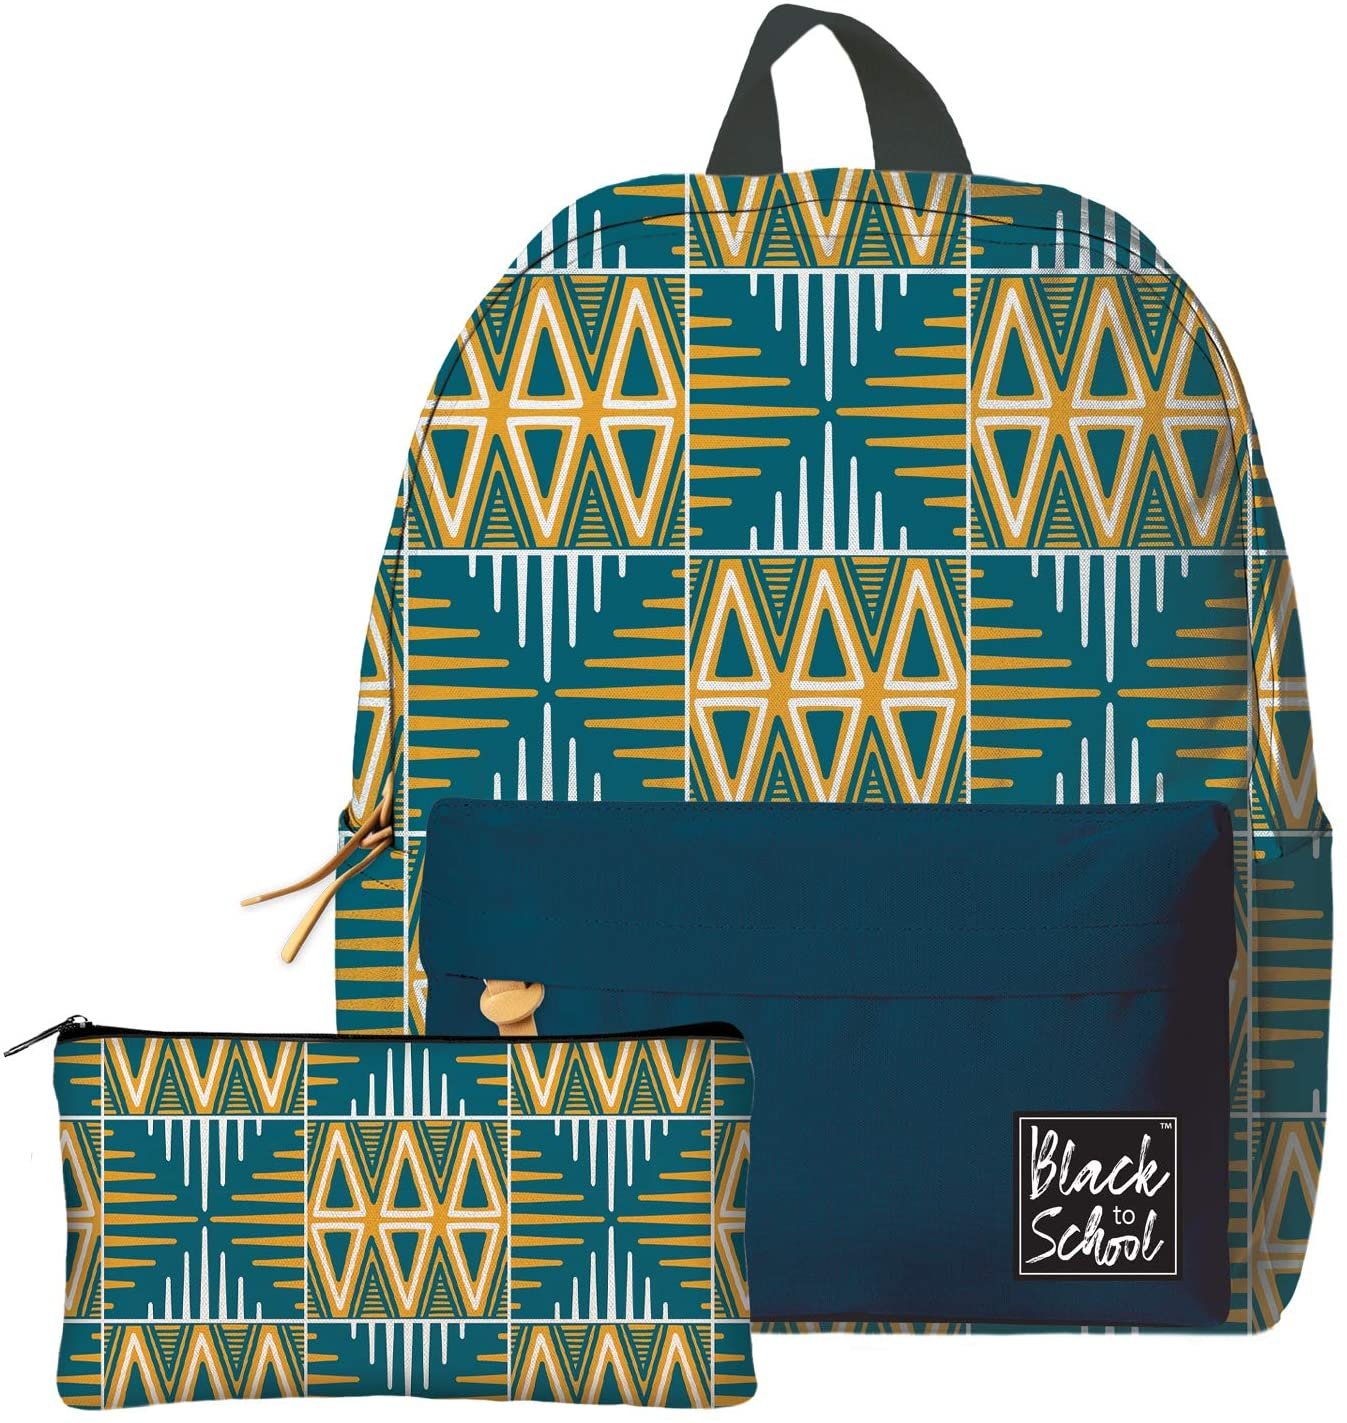 African American Expressions Backpack - Fits 15 Laptops and Tablets - 2 Pouch Lightweight Bookbag for Students, Travel, School, and Work - Blue and Yellow Mudcloth